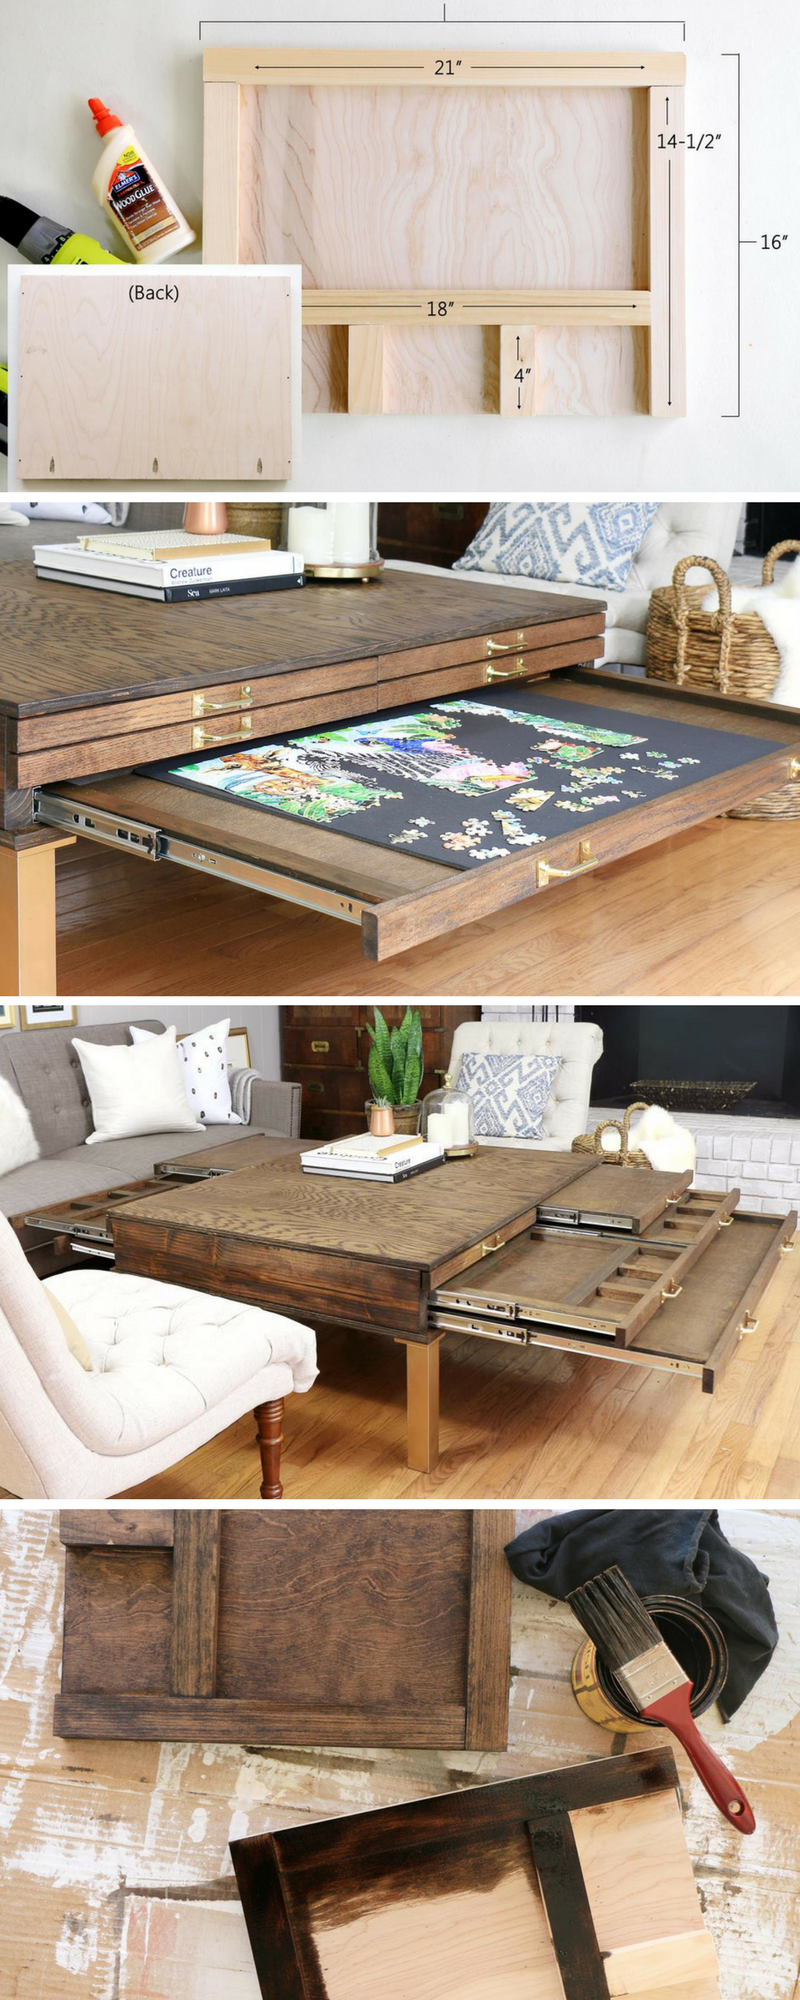 How to build a diy coffee table with pullouts for board games how to build a diy coffee table with pullouts for board games free project plan geotapseo Choice Image